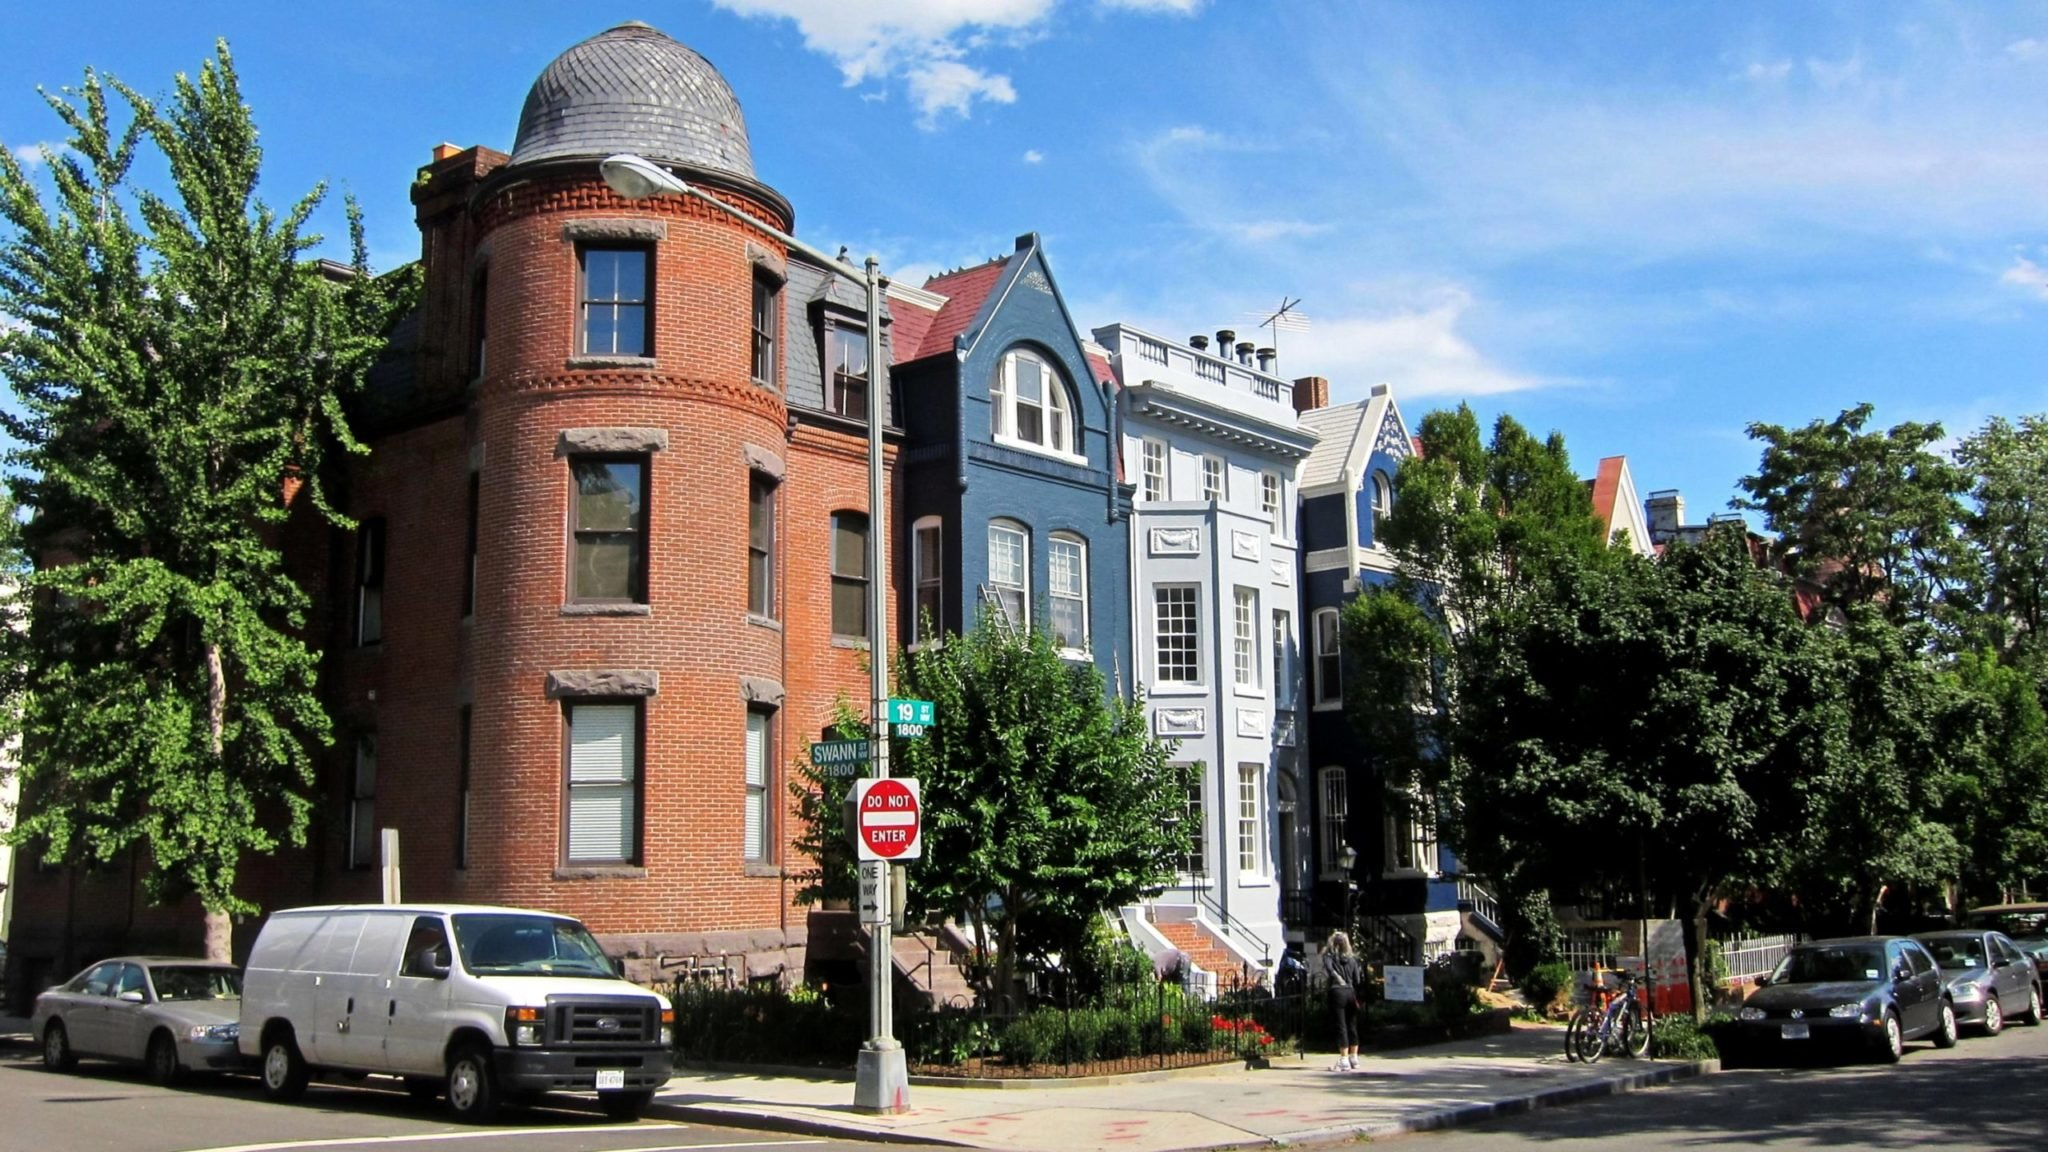 Dupont Circle neighborhood with historic homes. Photograph by Flickr user NCinDC.